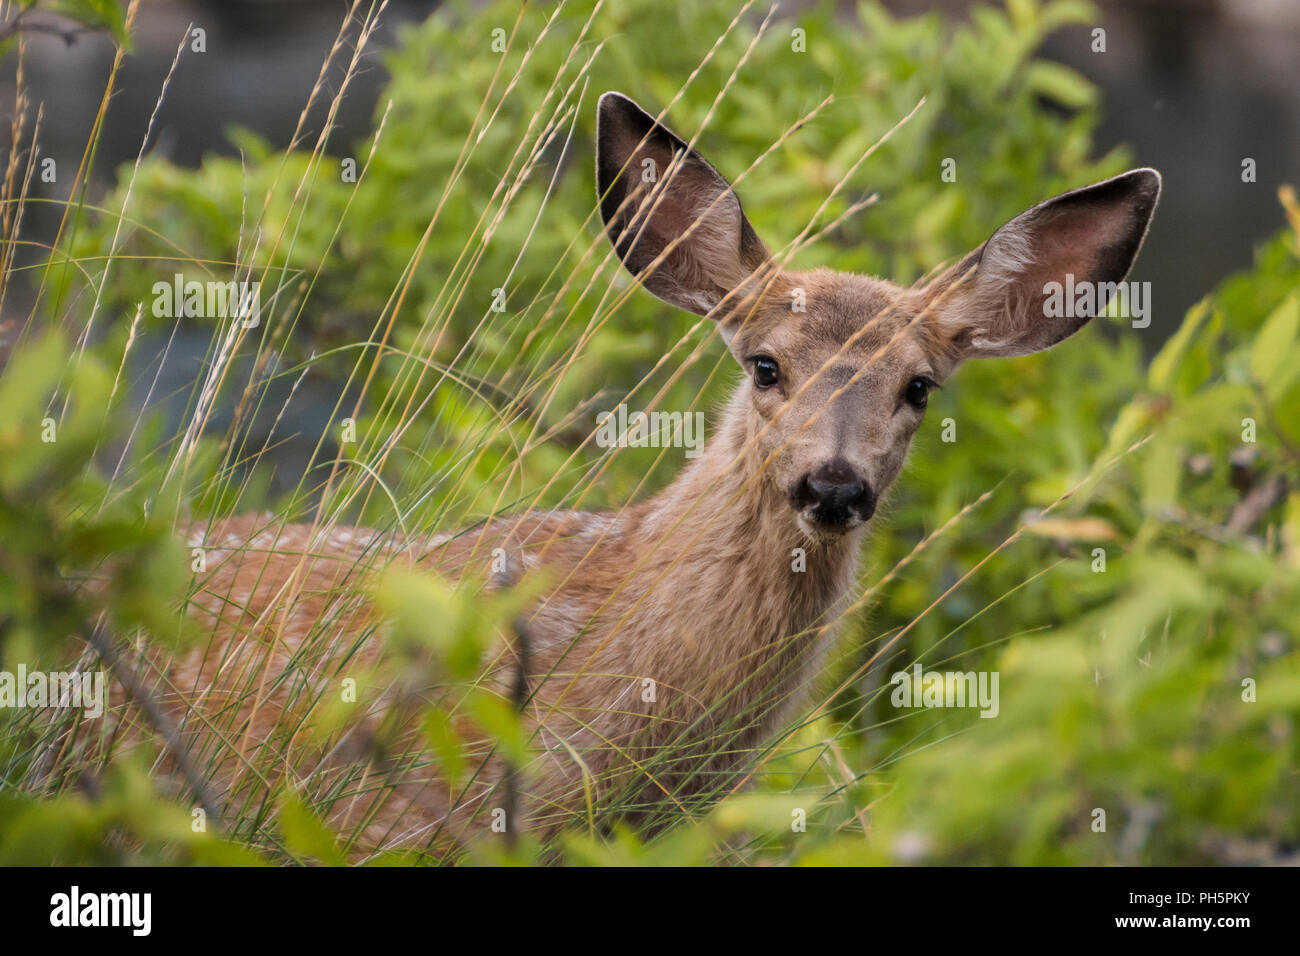 Mule deer fawn on the bank of the Snake River in Hells Canyon National Recreation Area. ROW Adventures. - Stock Image